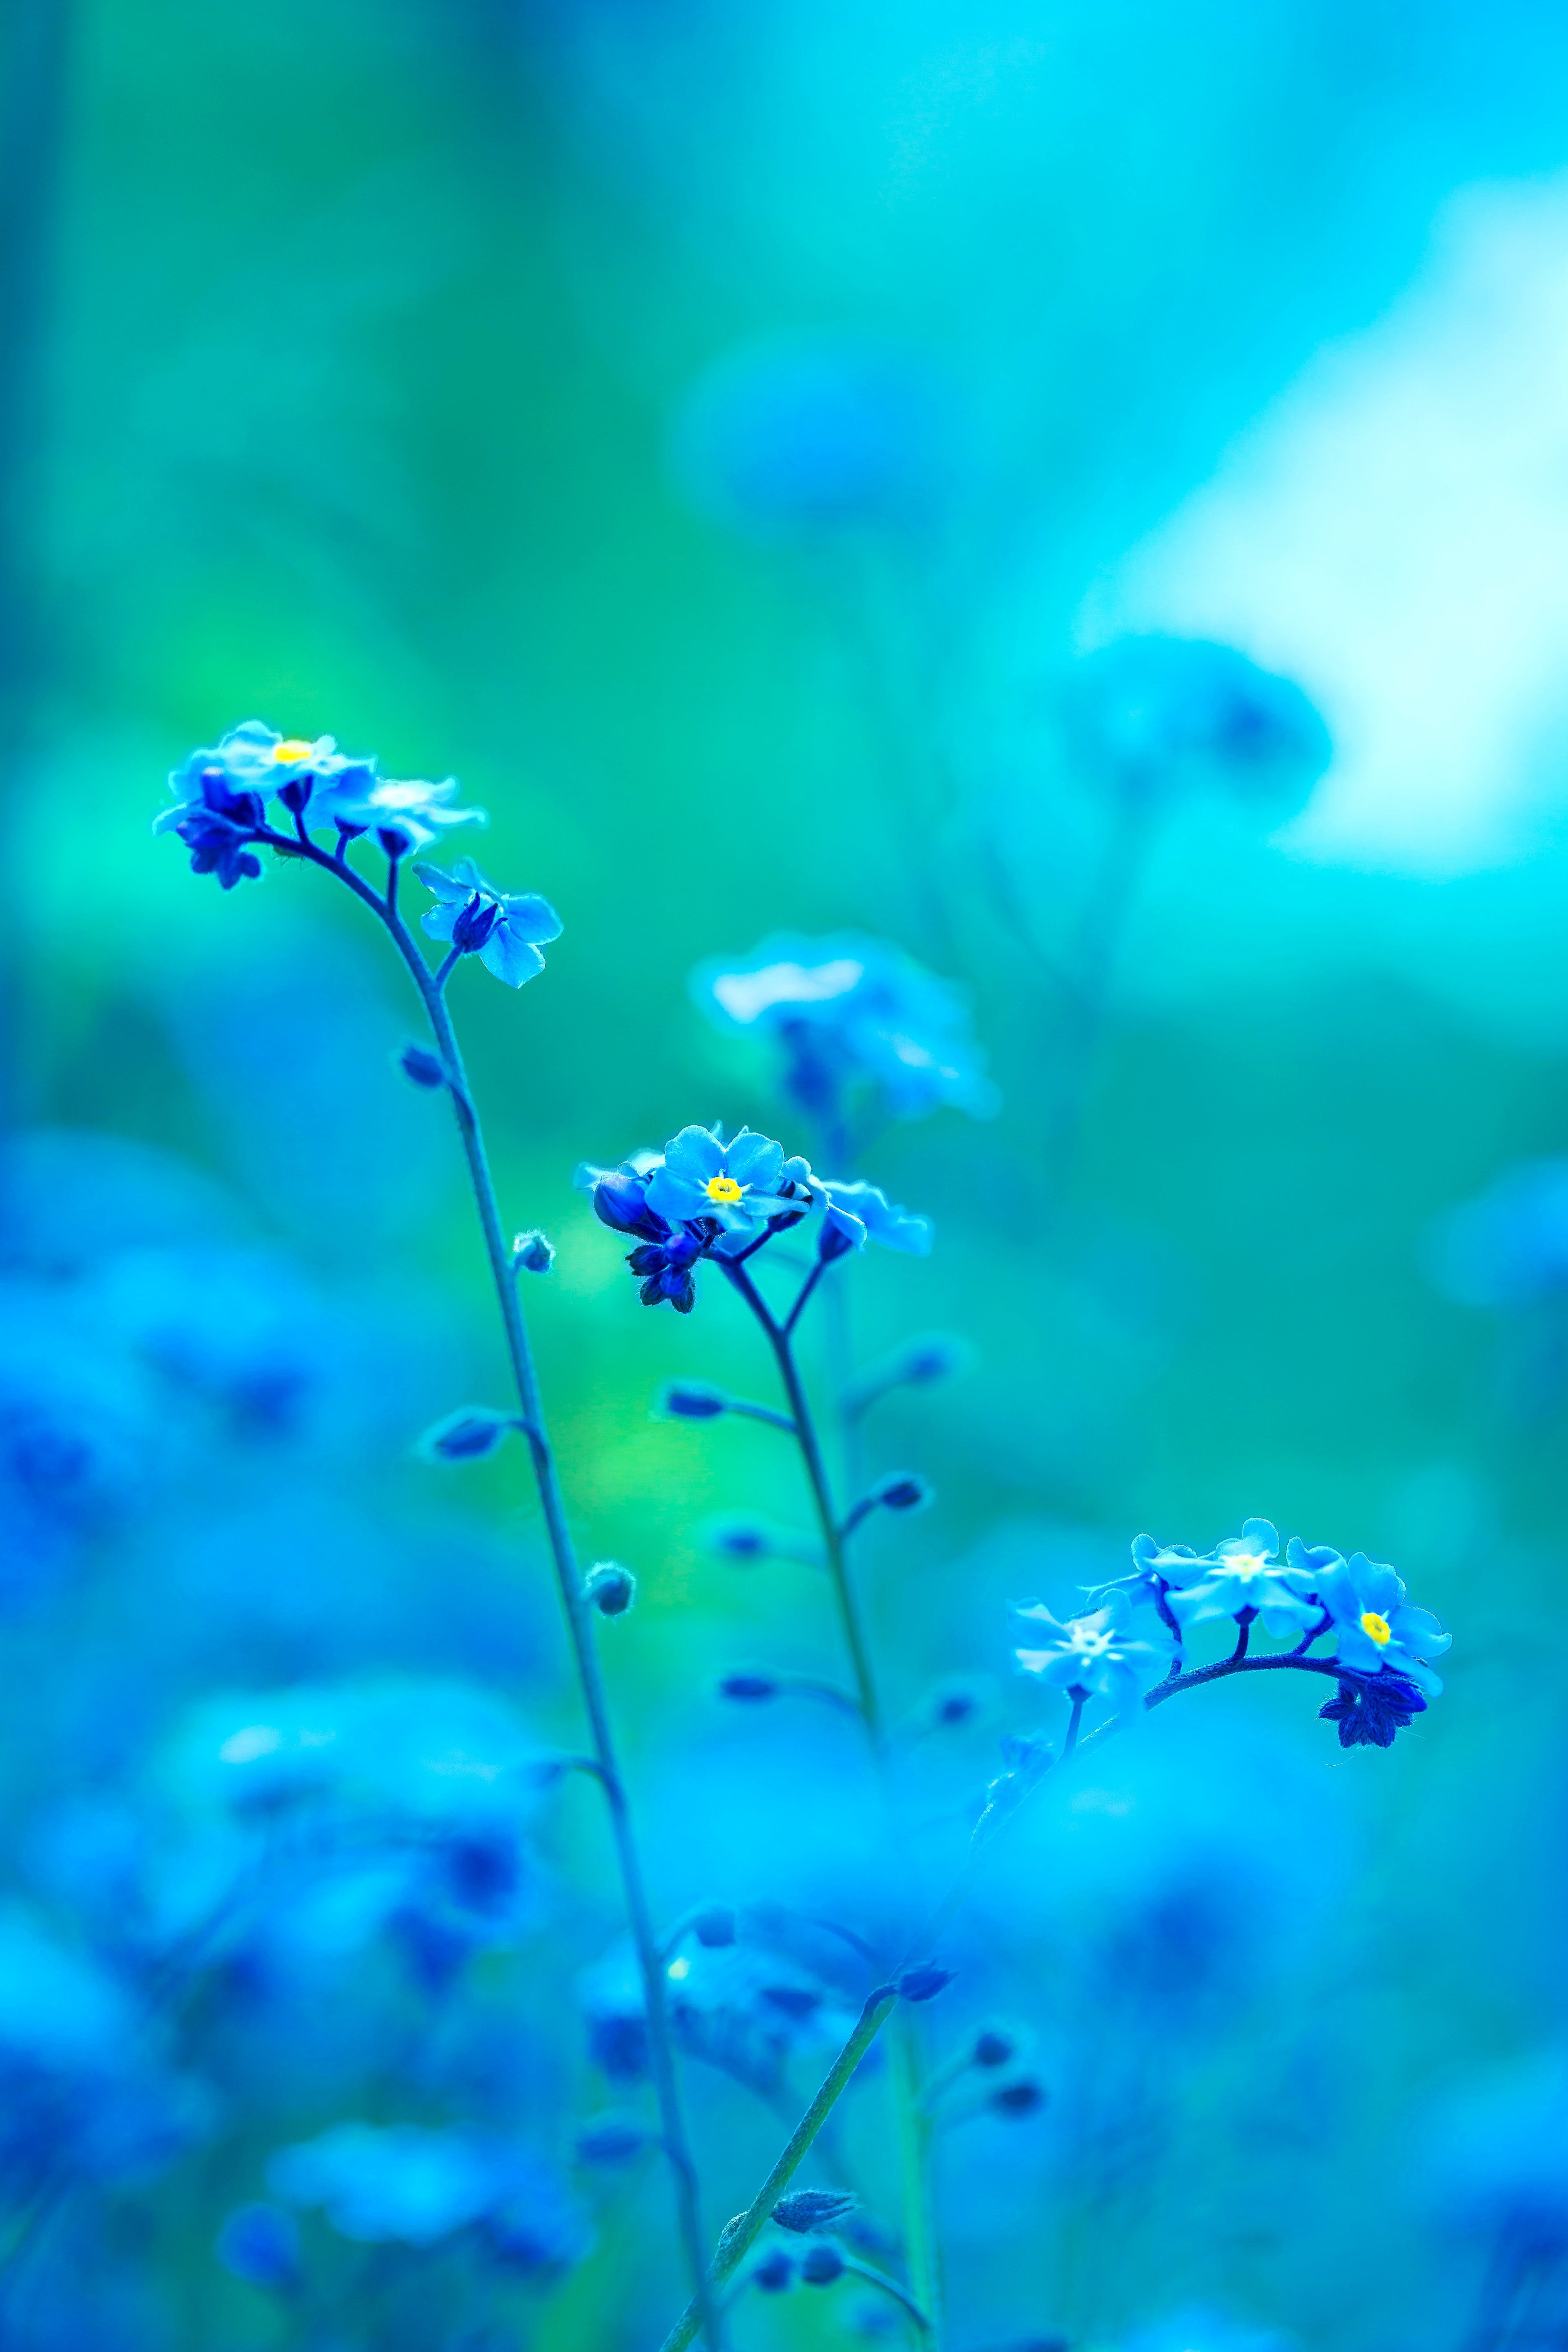 Free stock photo of light, nature, flowers, blue